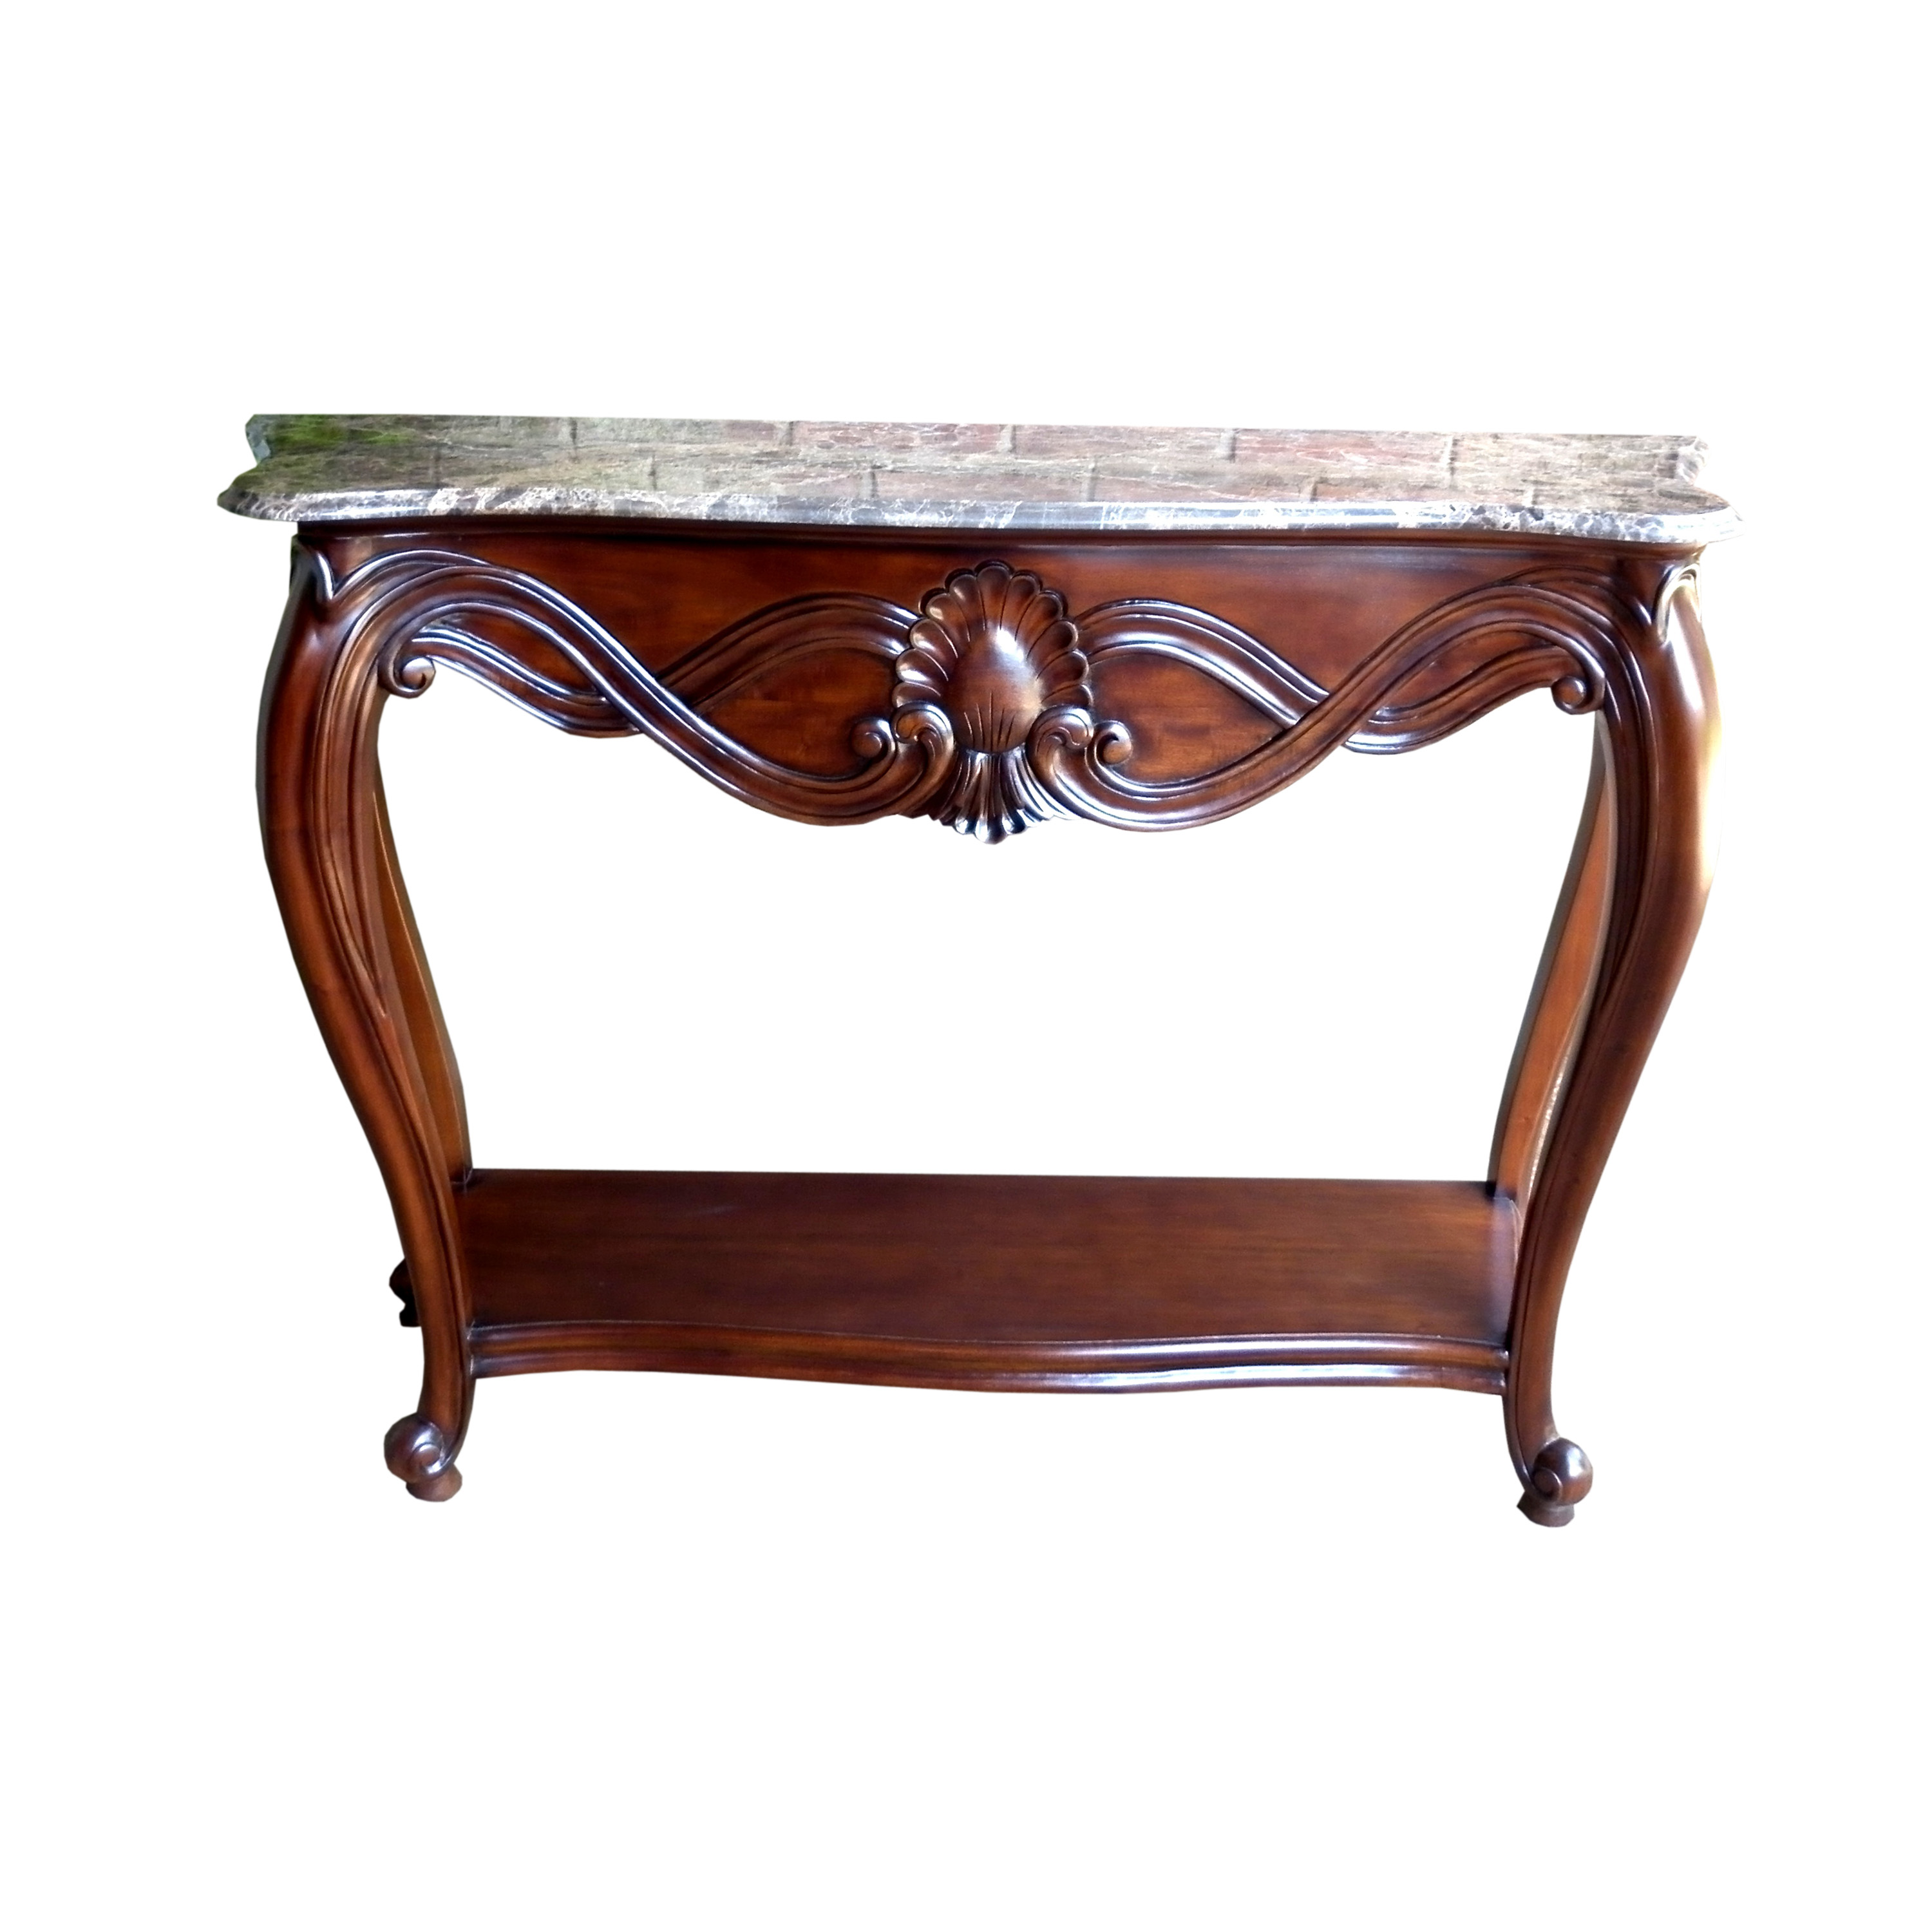 Home Furniture Classic Mahogany Console Table With Marble Top Mahogany Furniture Living Room Indonesia Buy Furniture Living Room Furniture Console